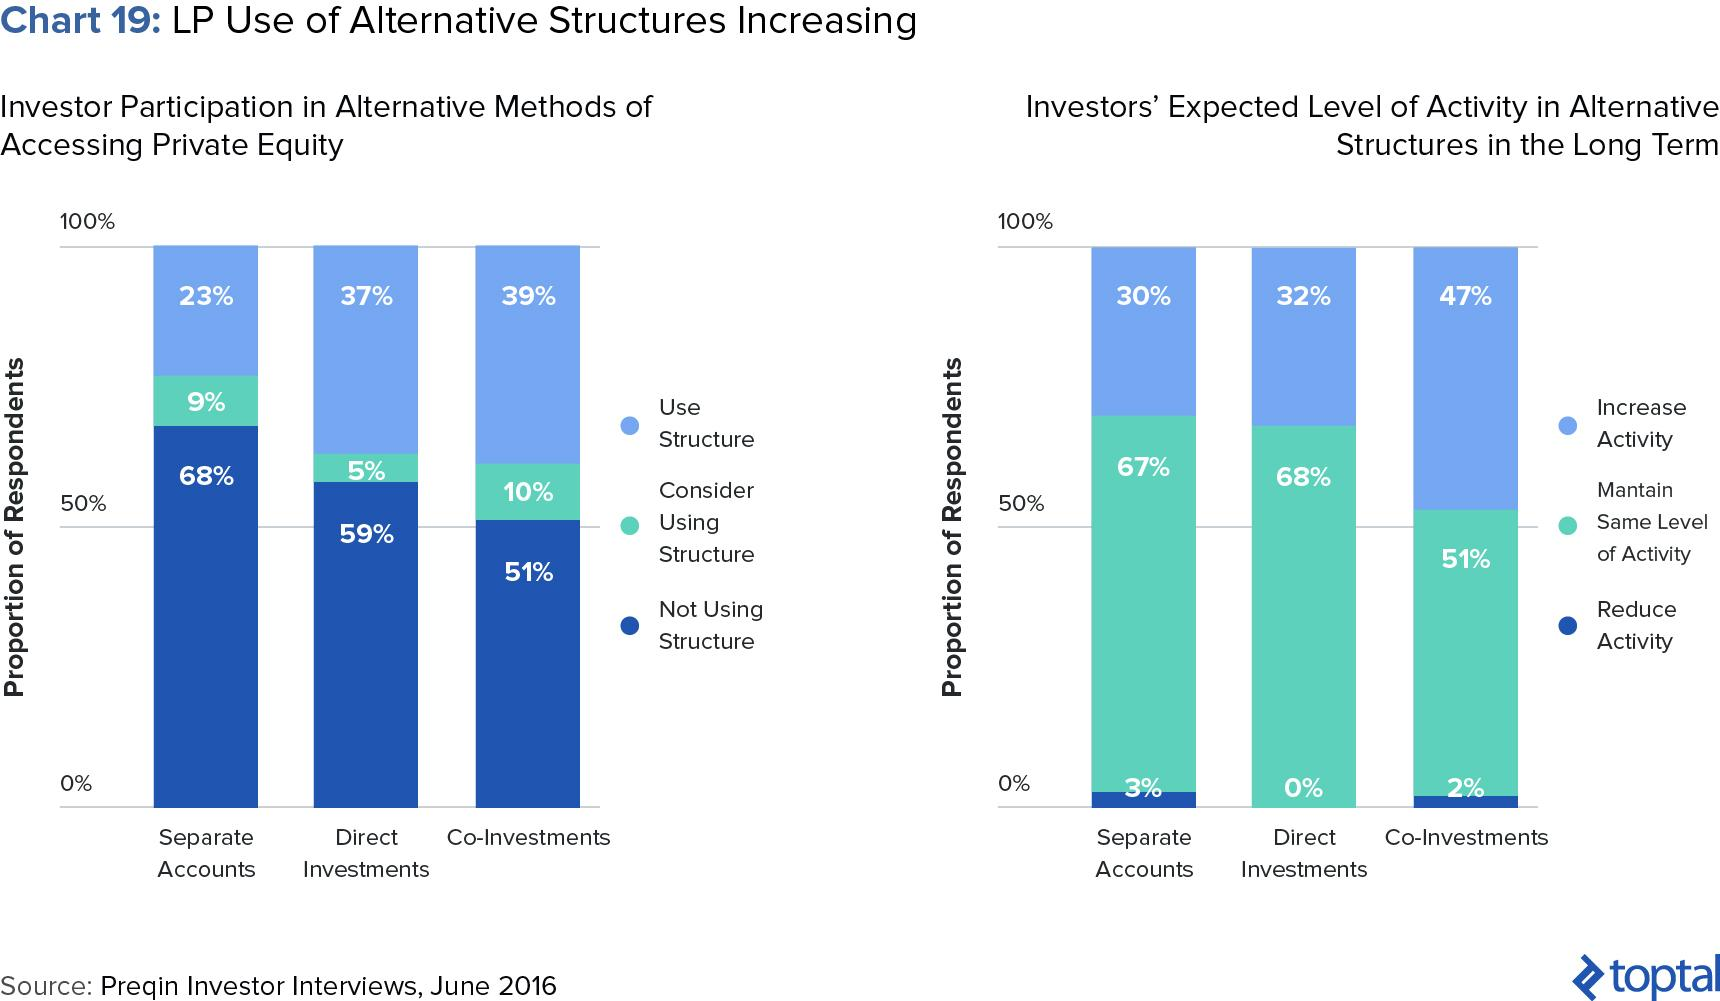 Chart 19: LP Use of Alternative Structures Increasing